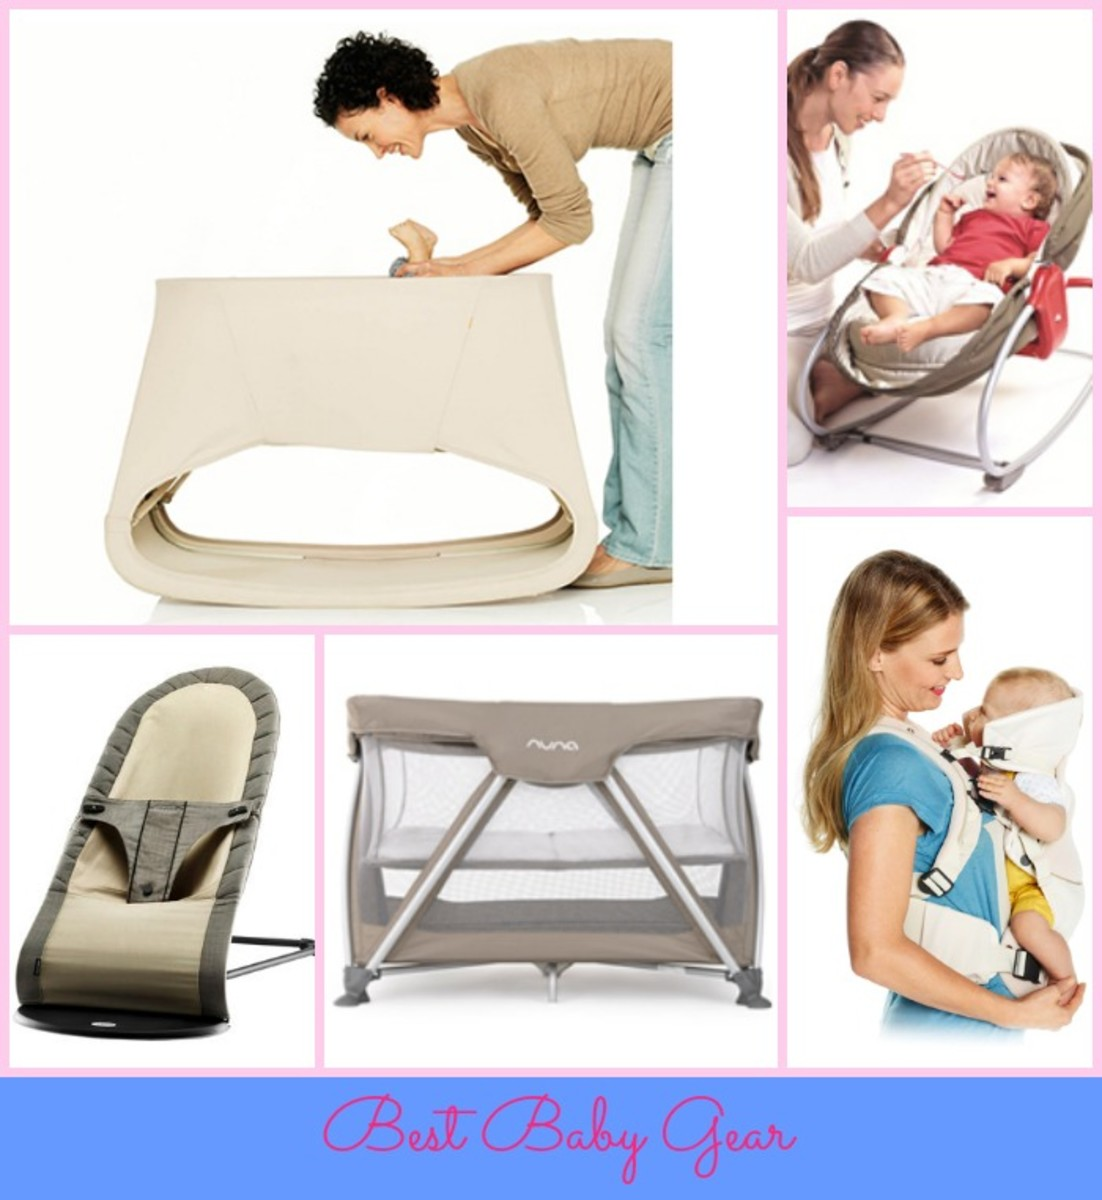 best baby gear, baby essentials, Stokke, bassinet, tiny love, Nuna, babyBjorn, my carrier cool, organic baby items